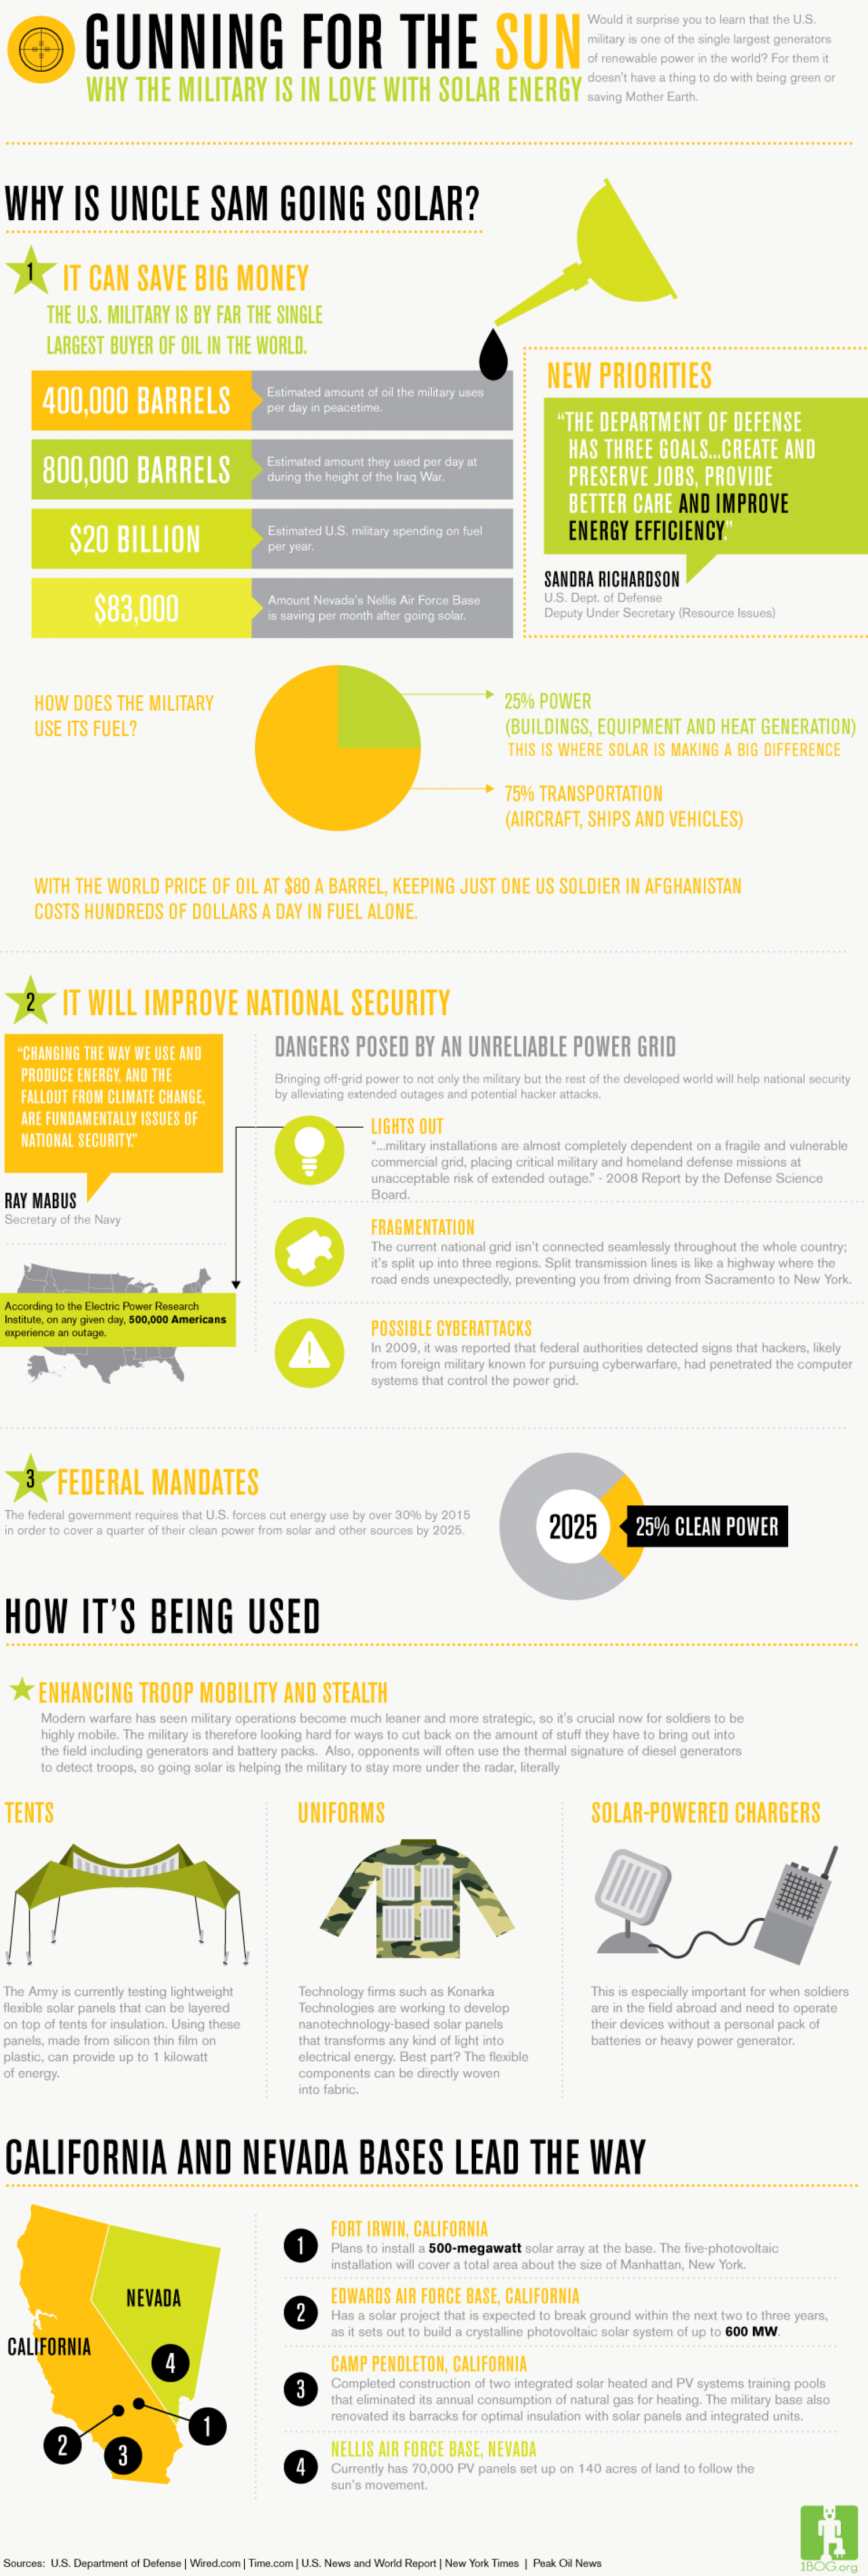 Gunning For The Sun Infographic